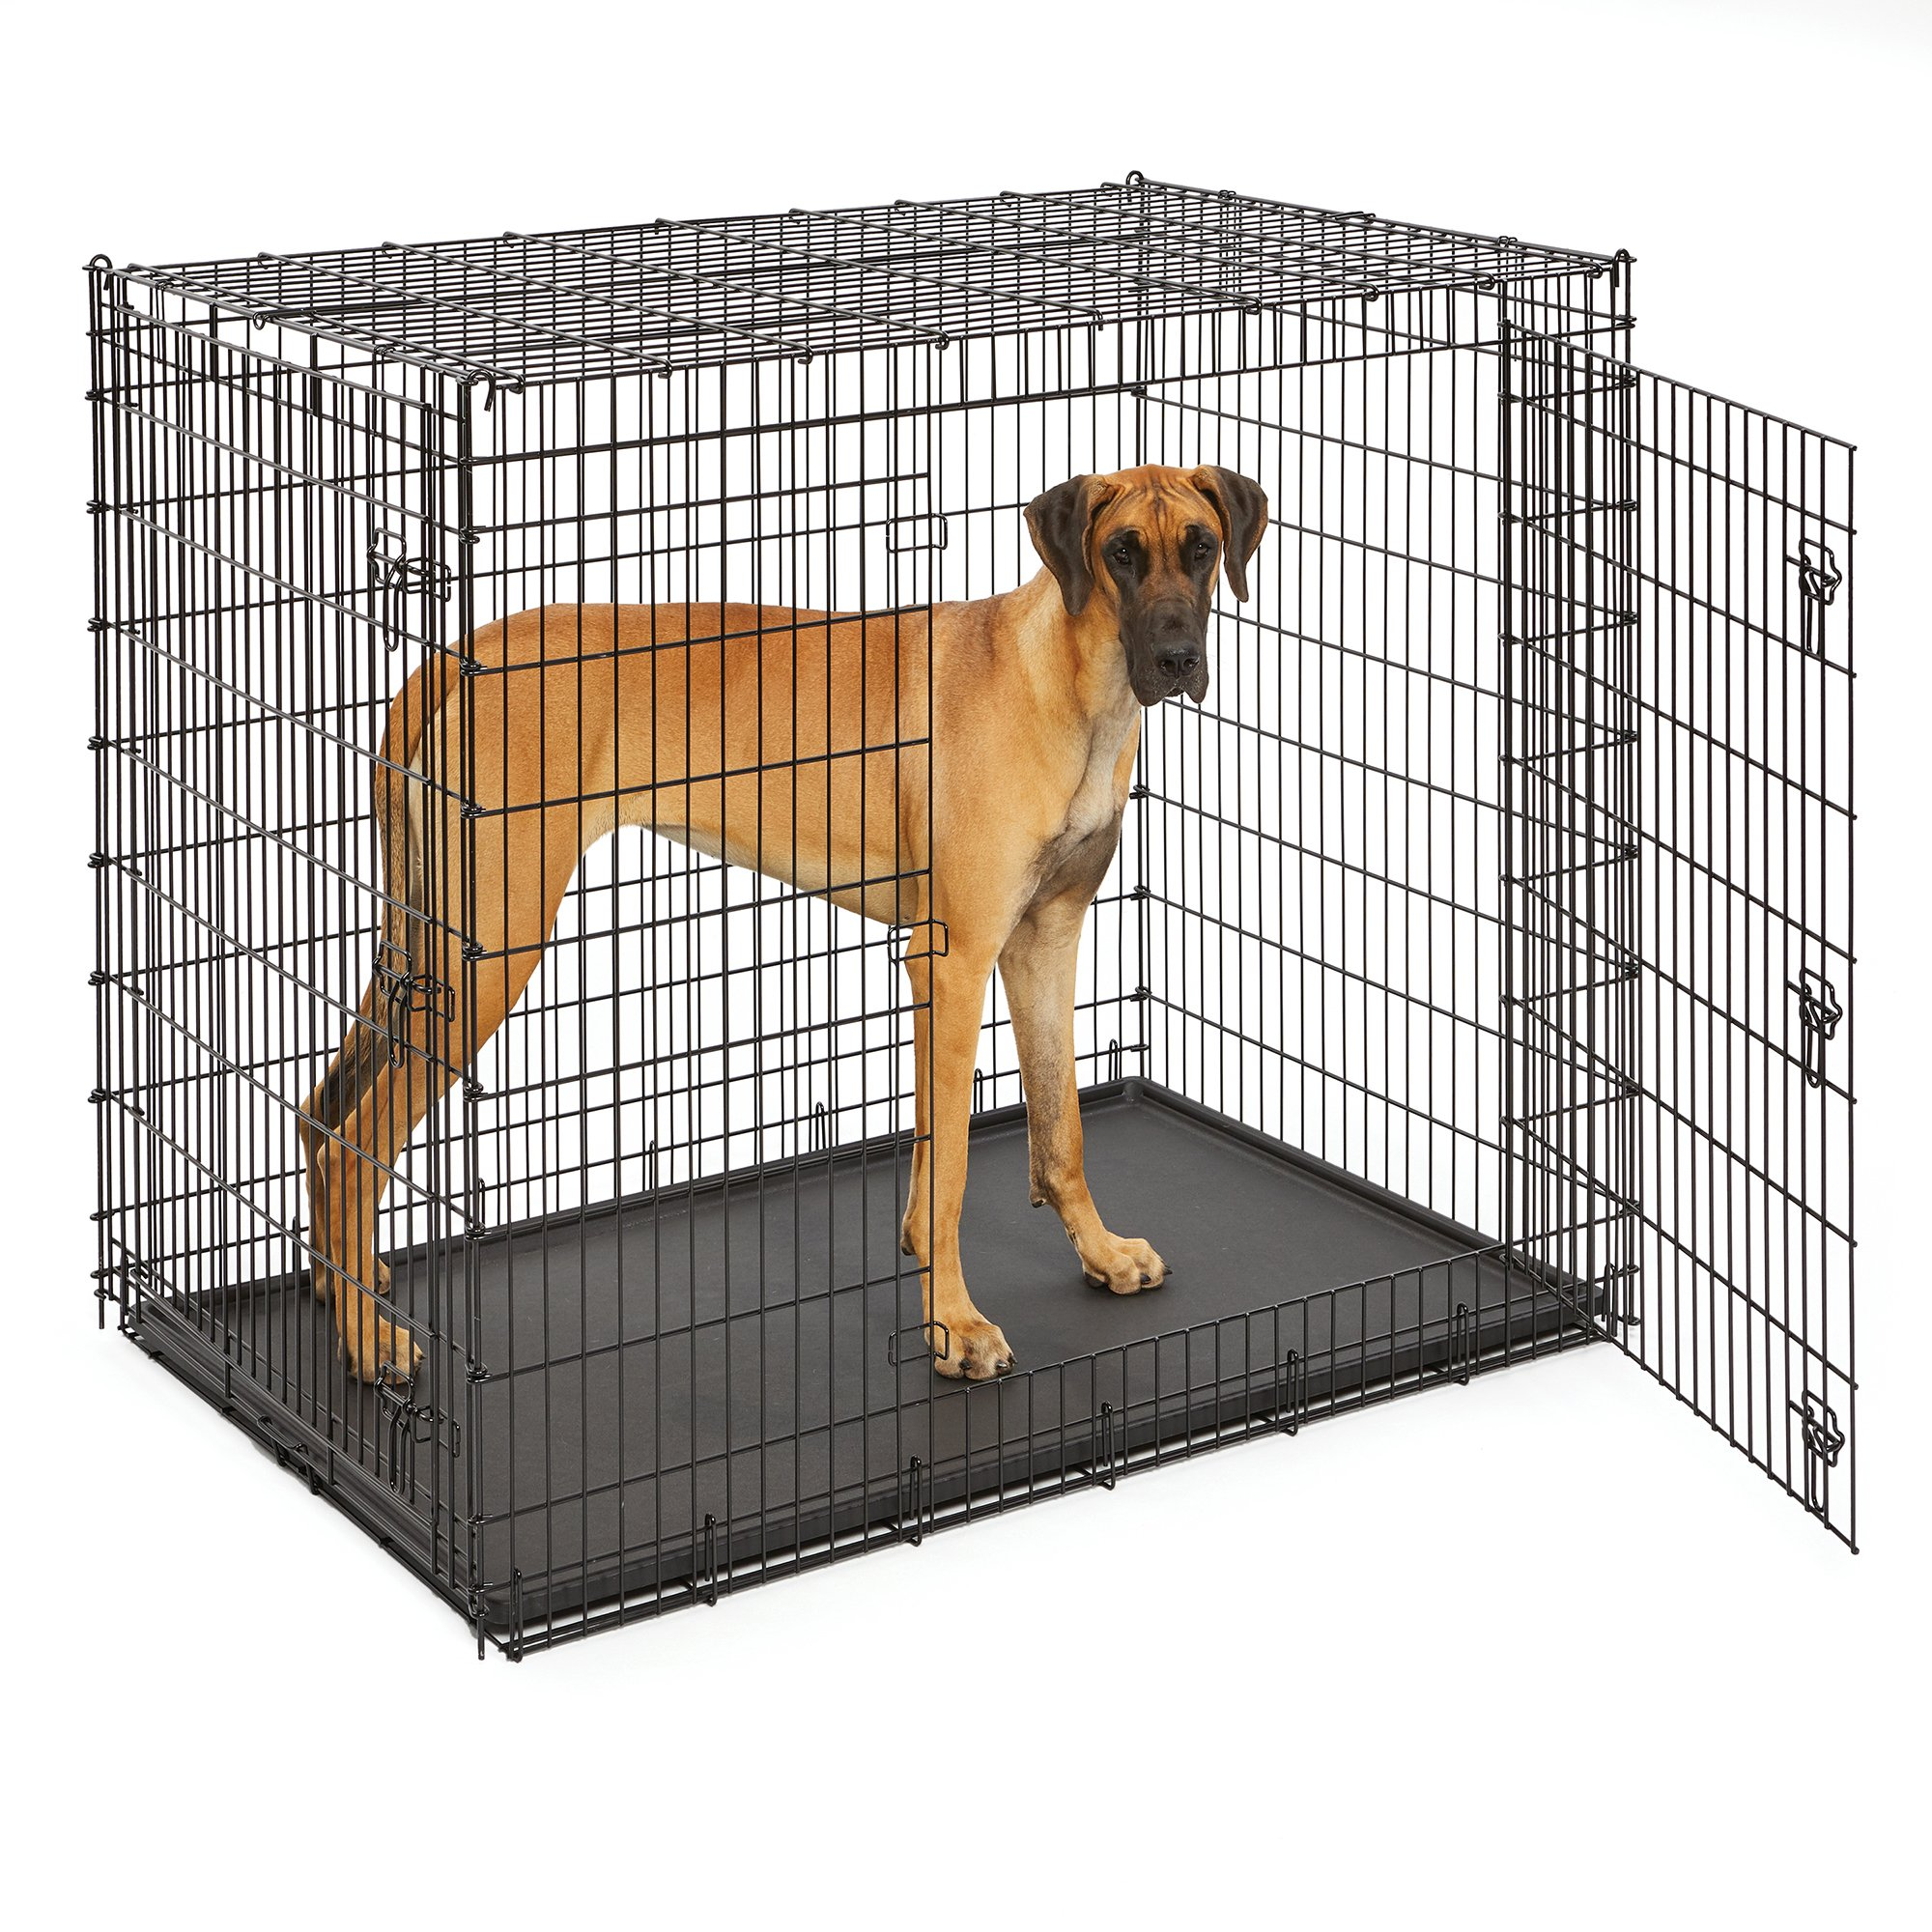 MidWest Extra Large Dog Breed (Great Dane) Heavy Duty Metal Dog Crate w/ Leak-Proof Pan, Double Door Giant Dog Crate measures 54L x 37W x 45H Inches & Weighs 80.2 lbs.